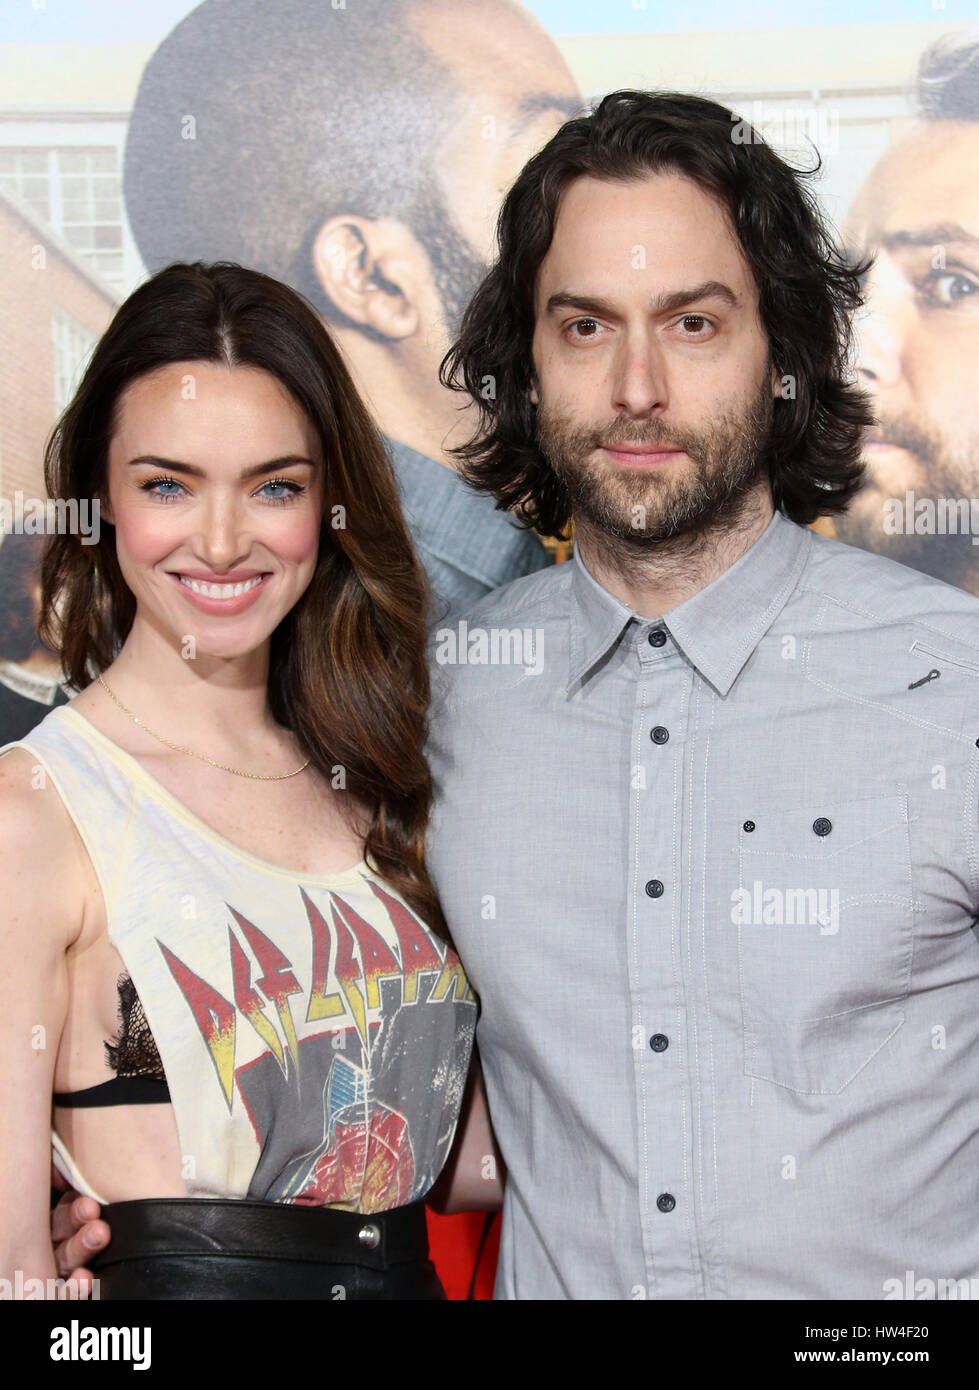 Premiere Of Warner Bros. Pictures' Fist Fight'  Featuring: Cassi Colvin, Chris D'Elia Where: Westwood, - Stock Image